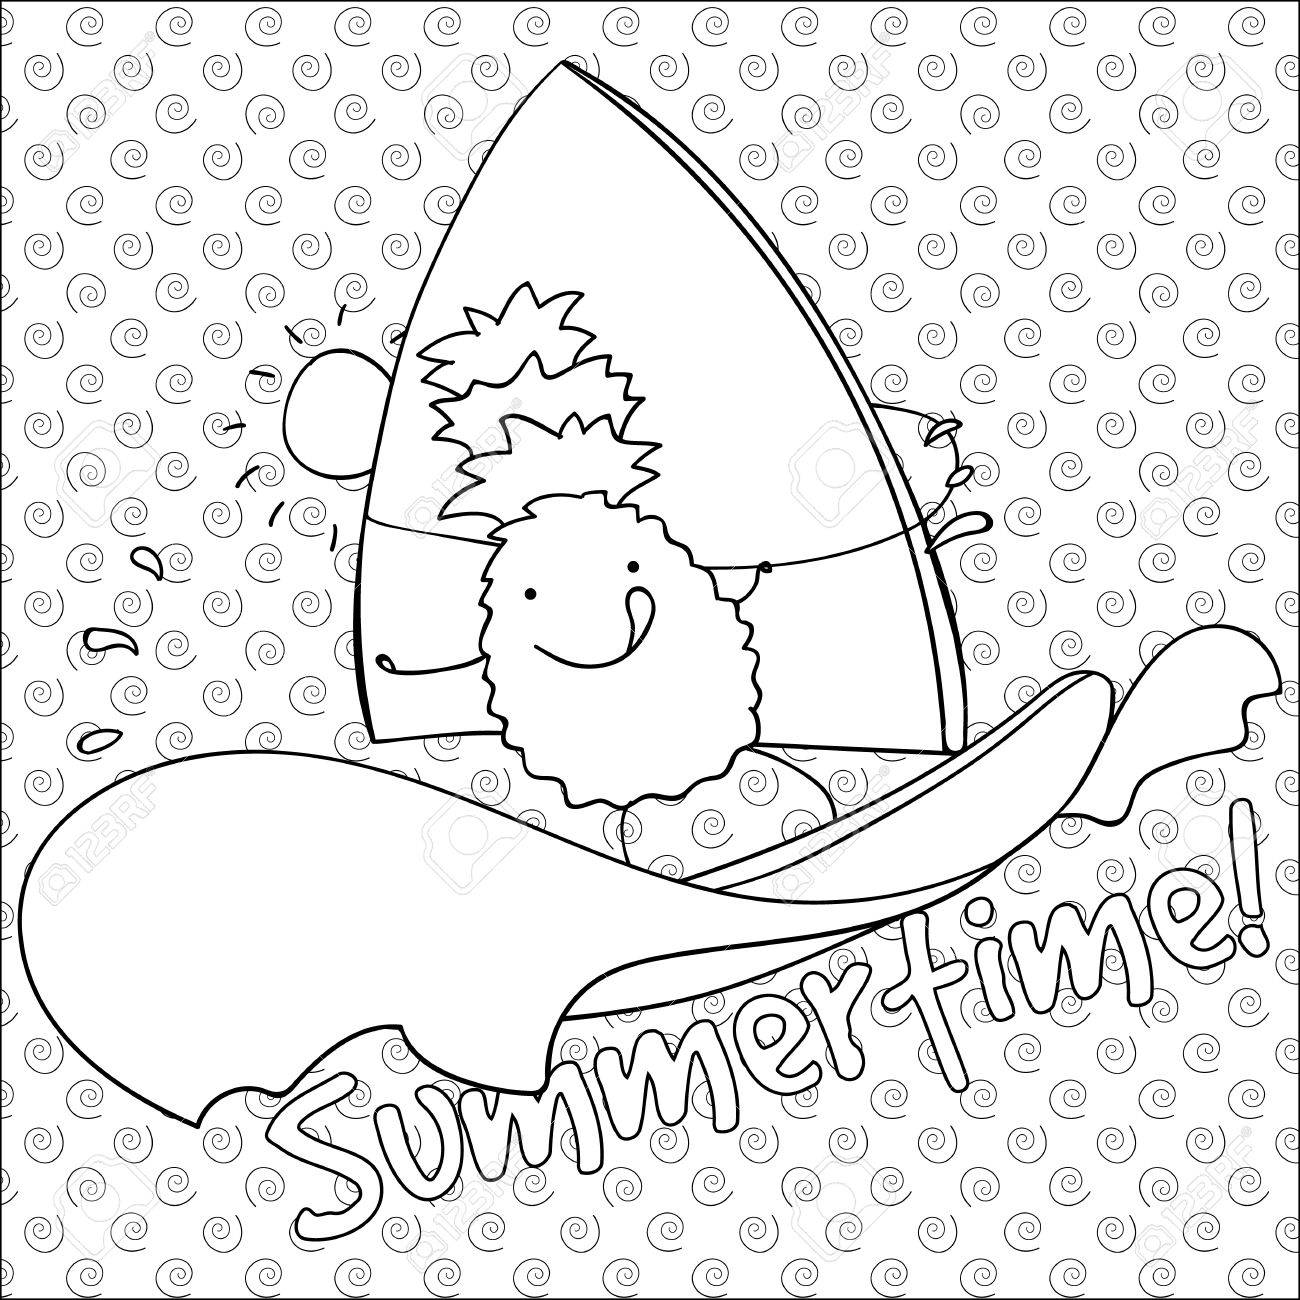 Cute Pineapple Windsurfing Summertime Coloring Book Page Vector Royalty Free Cliparts Vectors And Stock Illustration Image 57361786